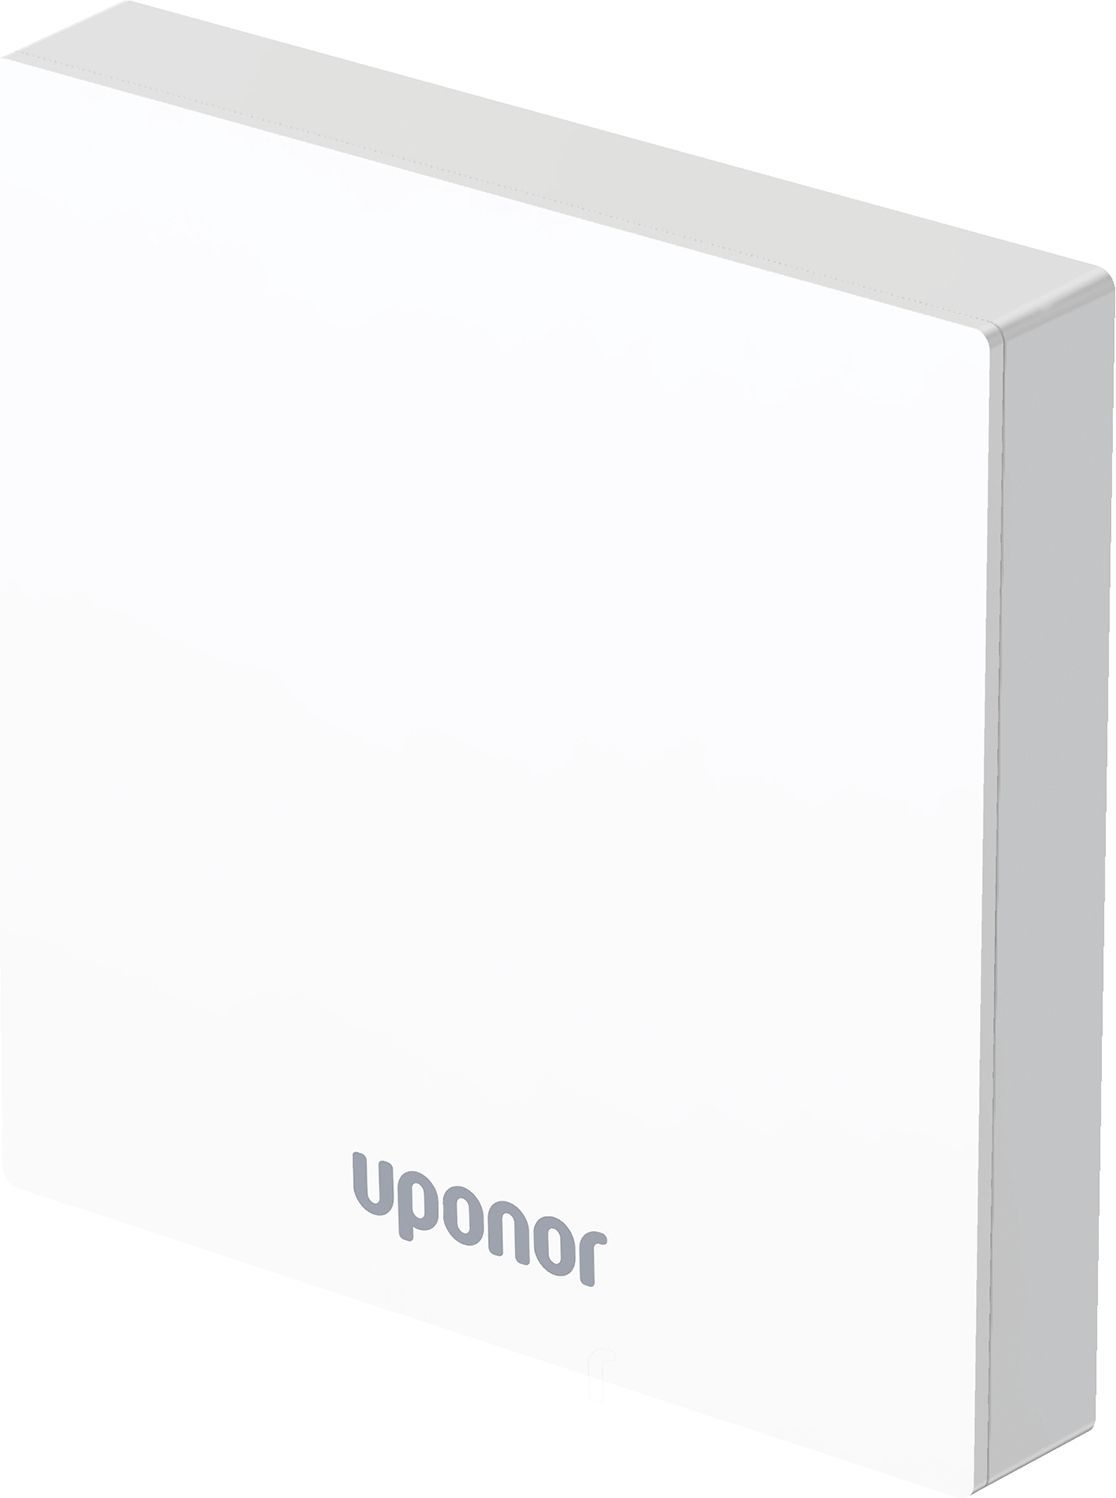 Huoneanturi Uponor Smatrix Wave Plus T+RH T-161